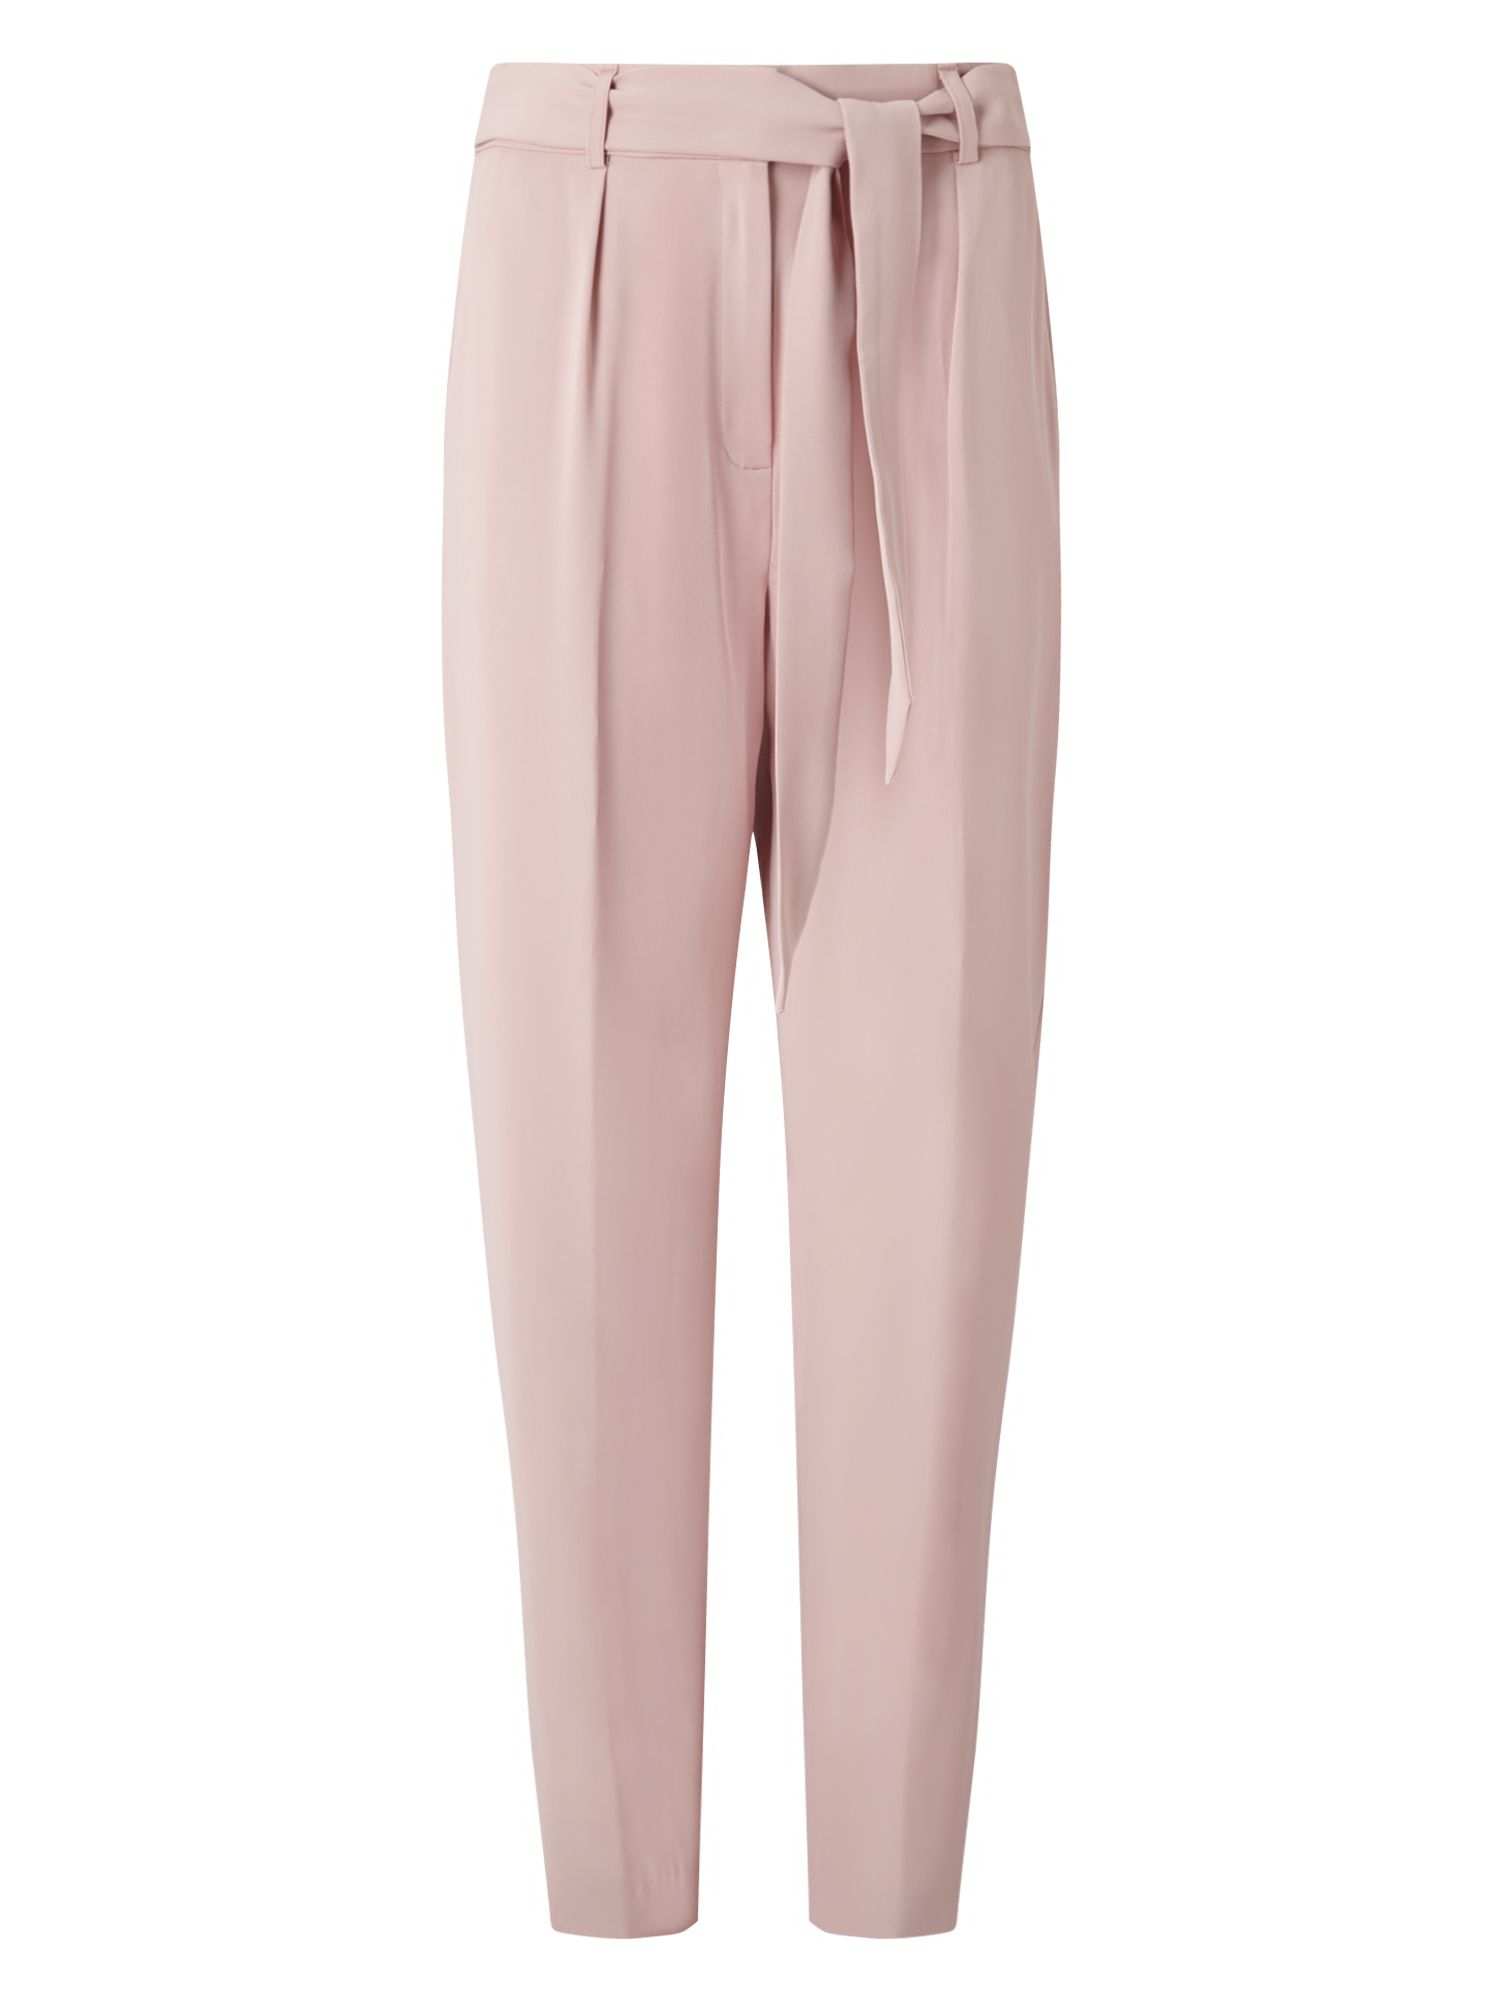 Eastex Belted Peg Leg Trousers, Pink